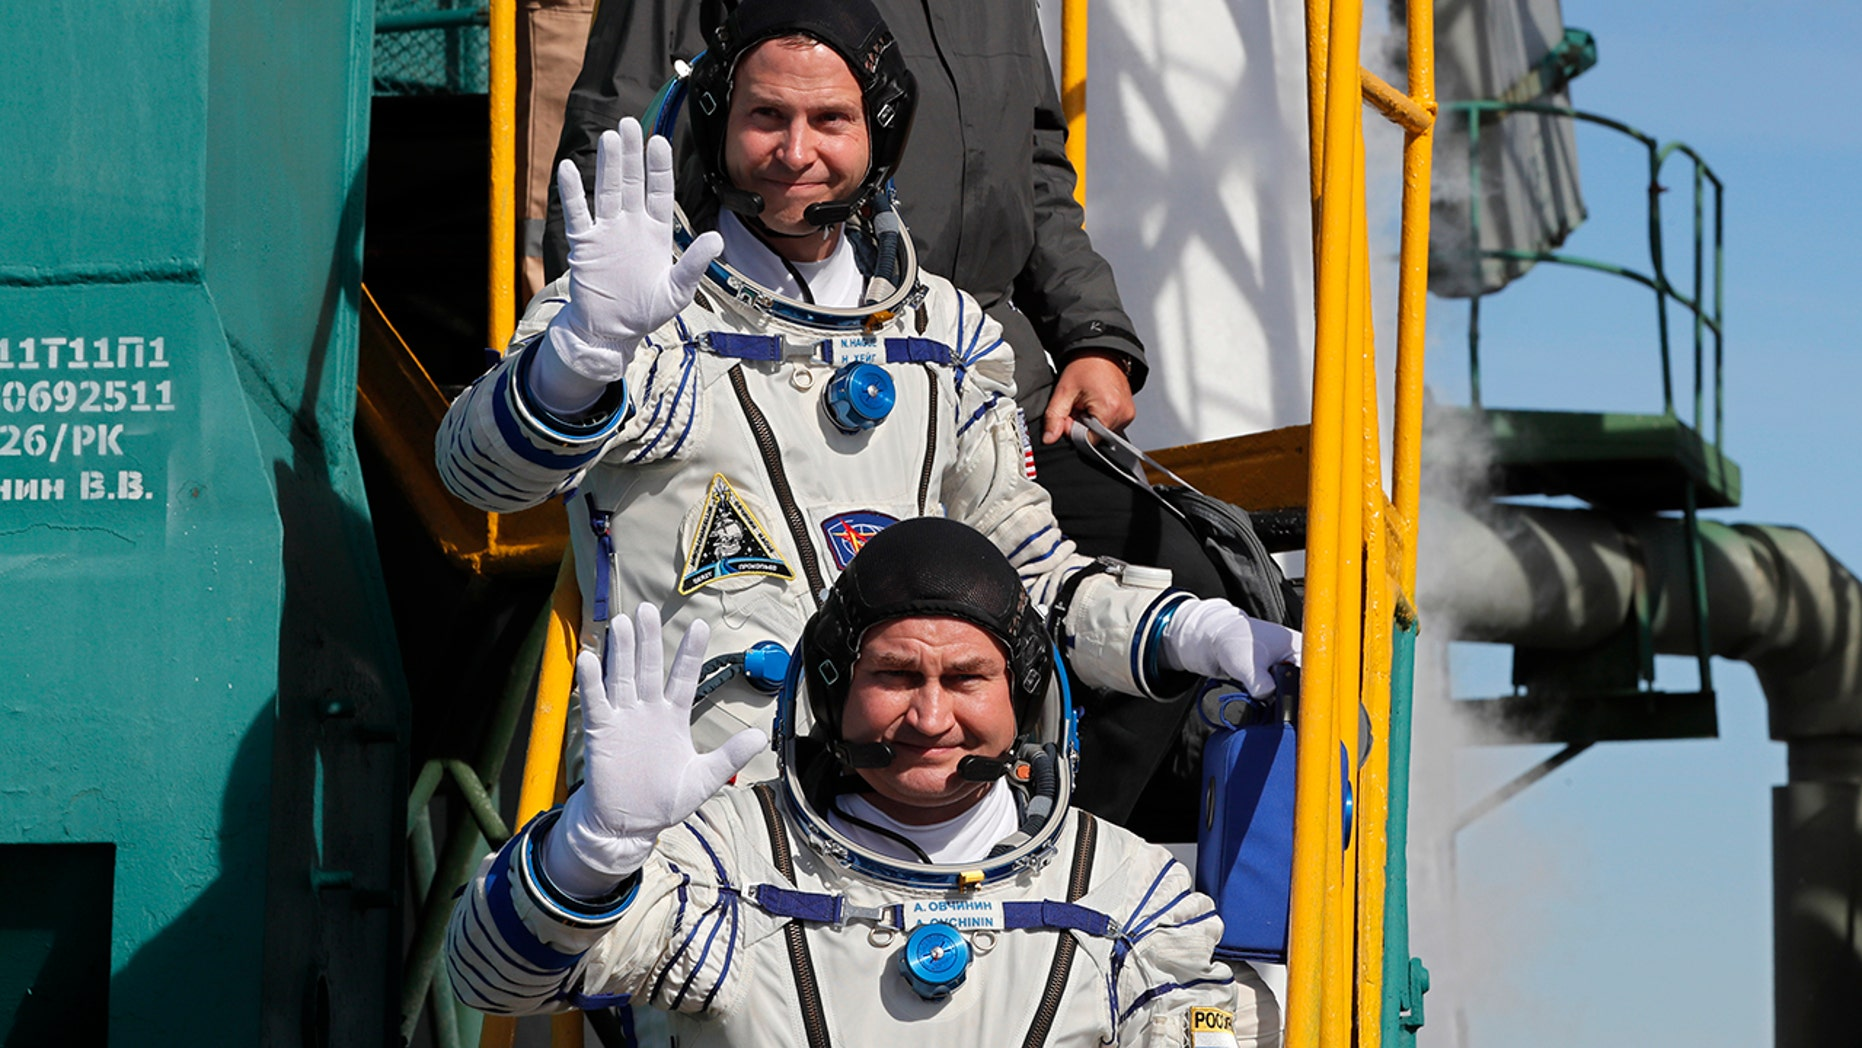 NASA Astronaut Nick Hague Thanks Rescuers, Supporters After Soyuz Rocket Launch Abort